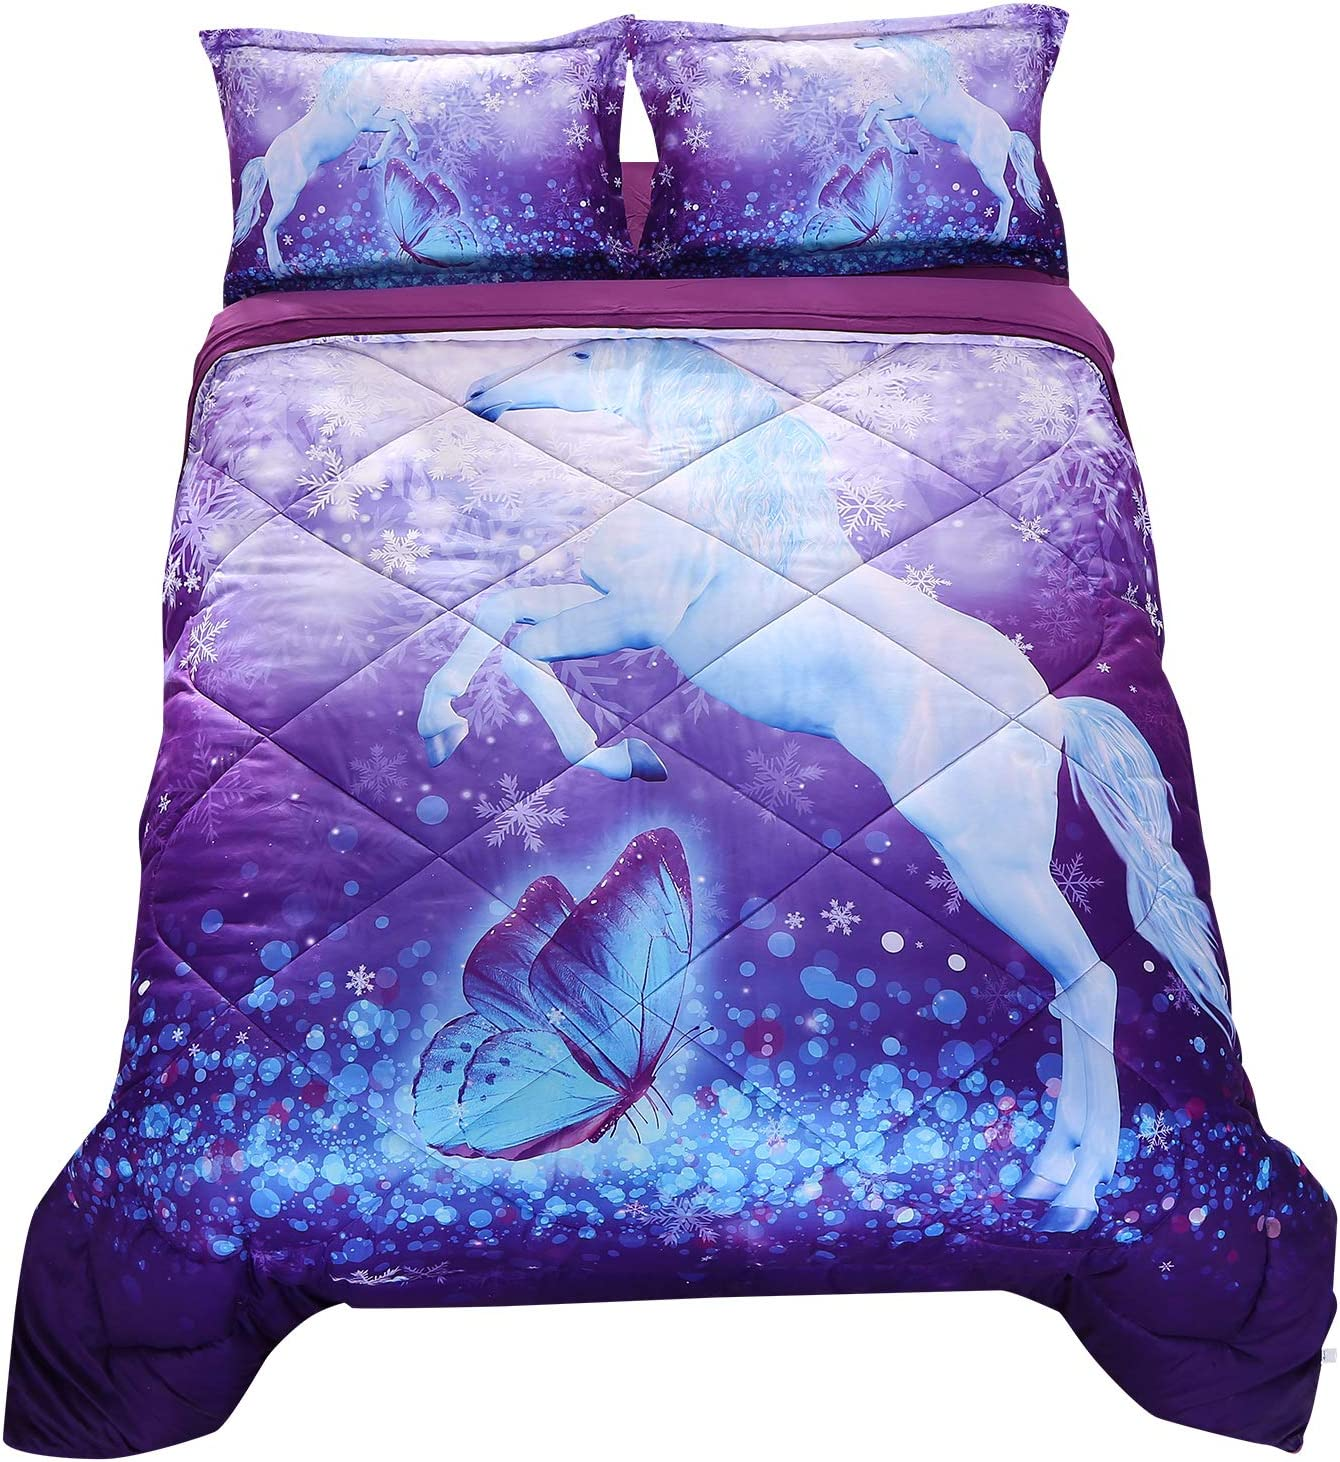 Wowelife Unicorn Comforter Sets Queen 3D Purple Butterfly Bedding Sets 5 Pieces with Comforter, Flat Sheet, Fitted Sheet and 2 Pillow Cases(Queen-5 Piece)